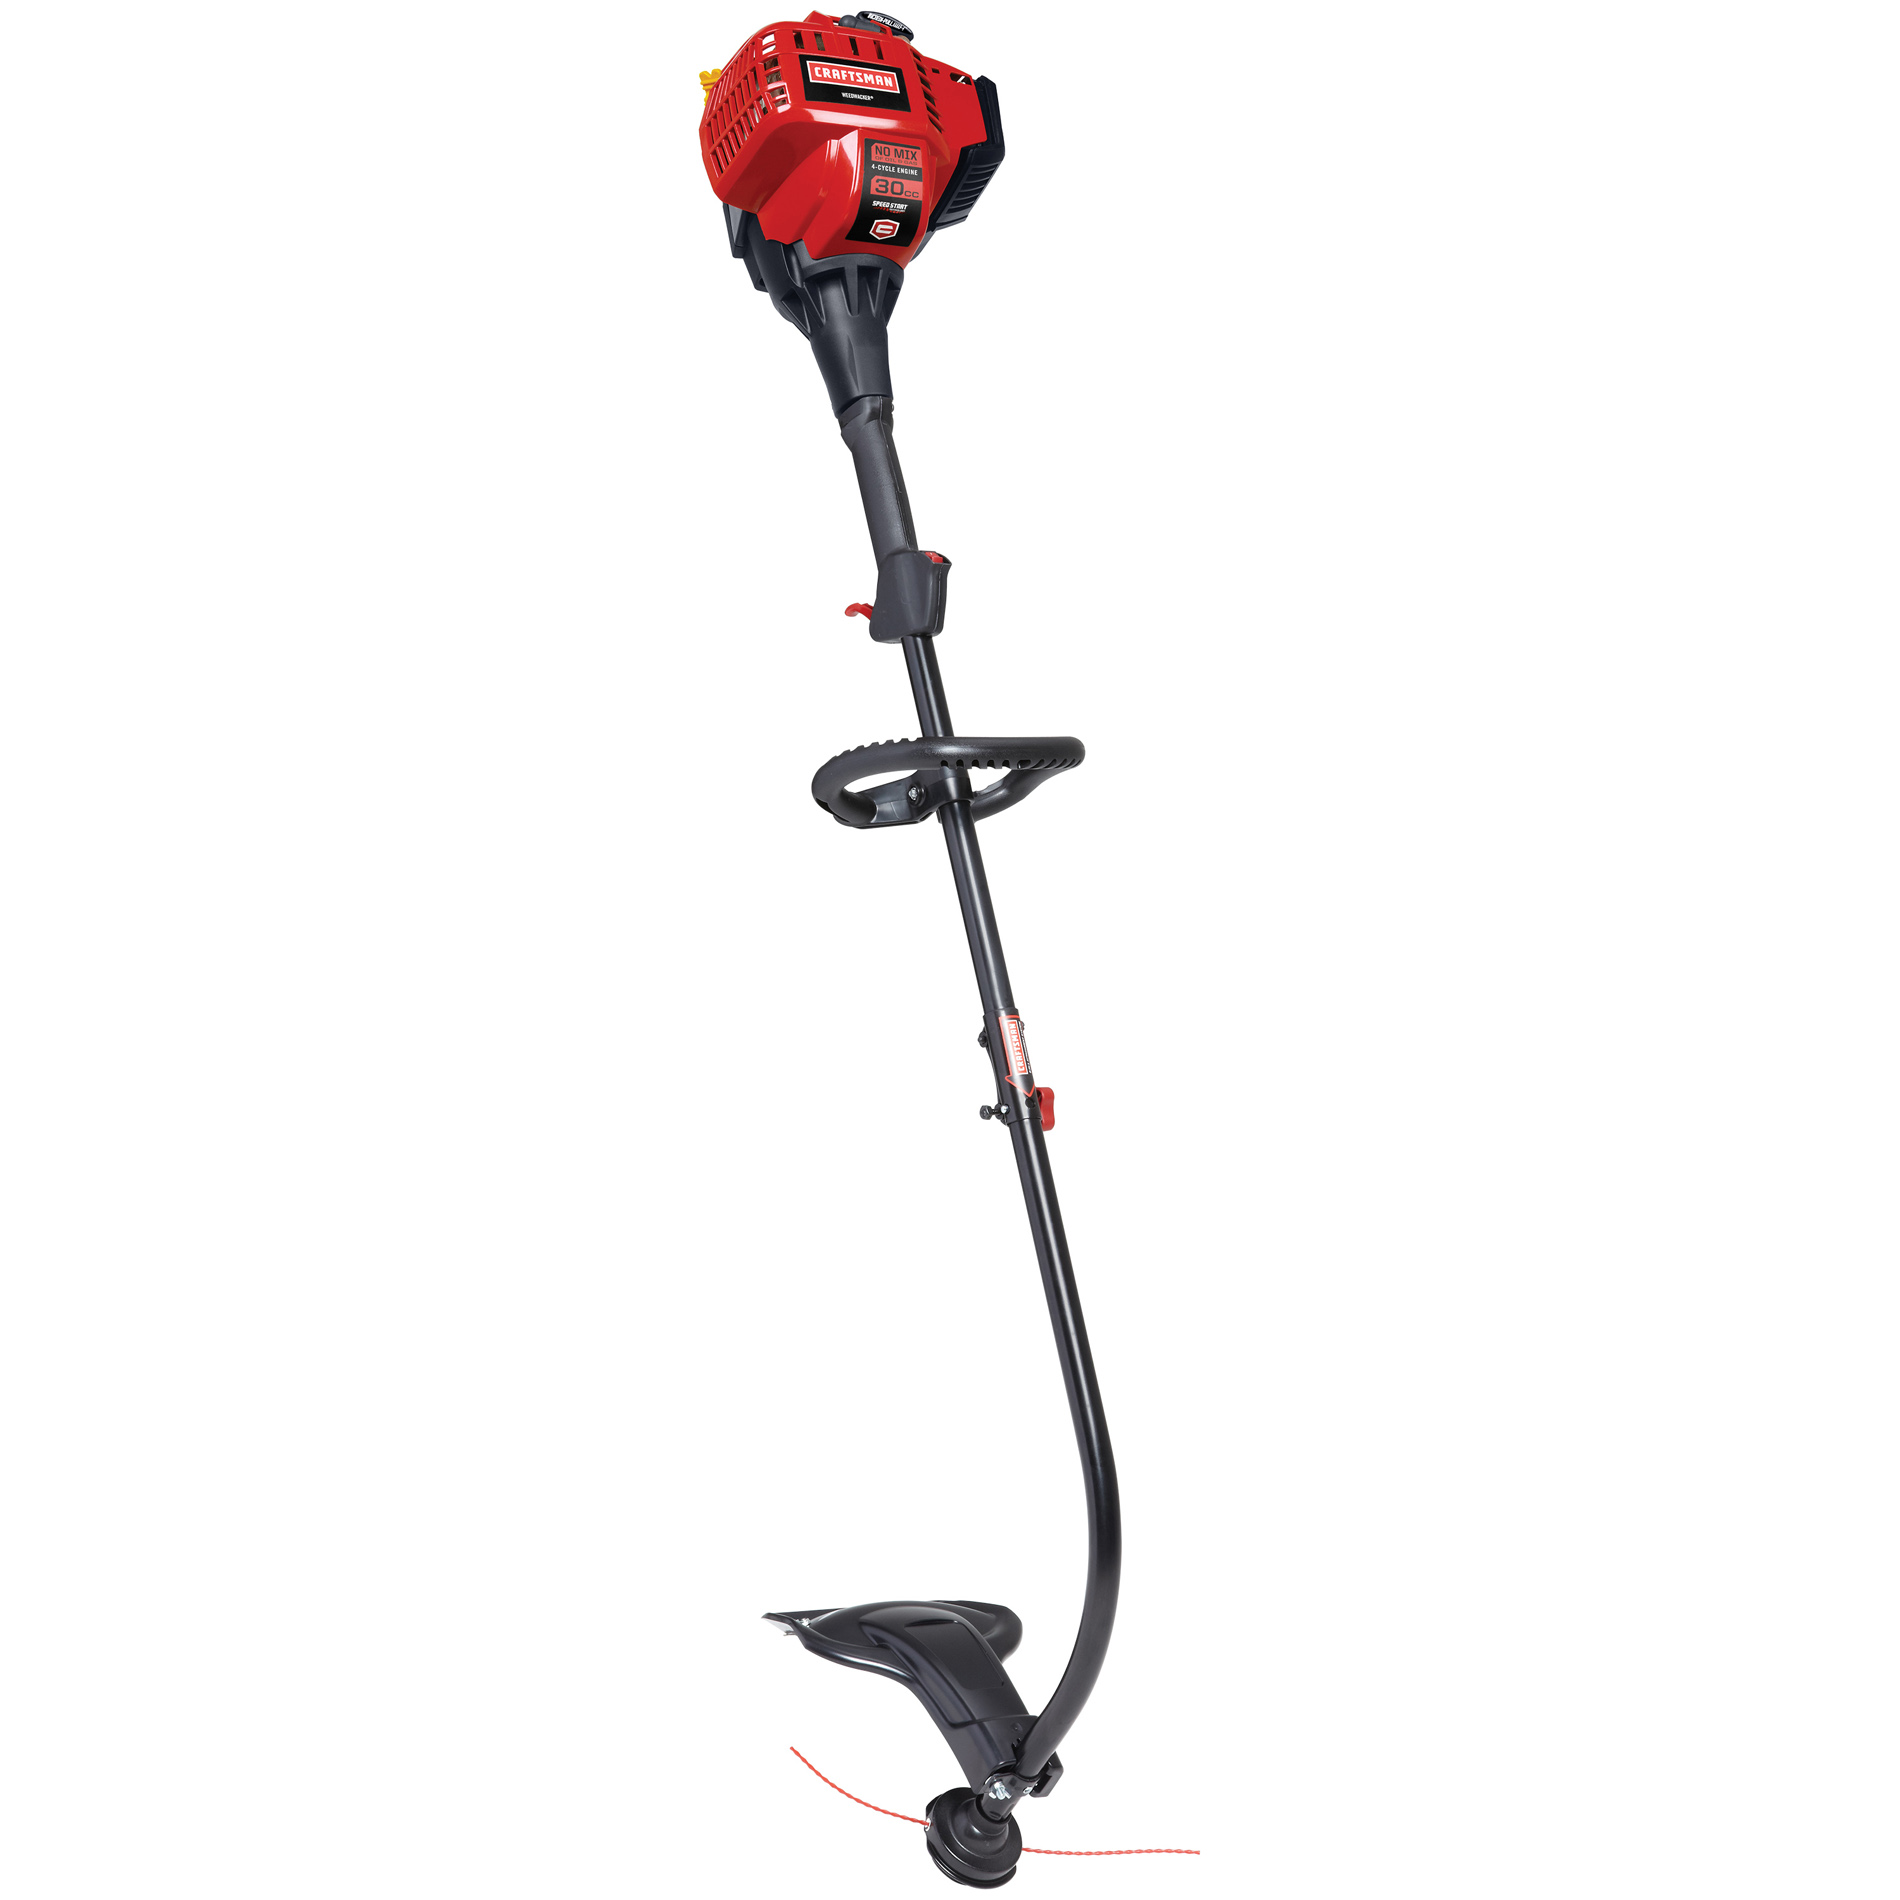 Craftsman 30cc 4-Cycle Curved Shaft Weedwacker™ Gas Trimmer